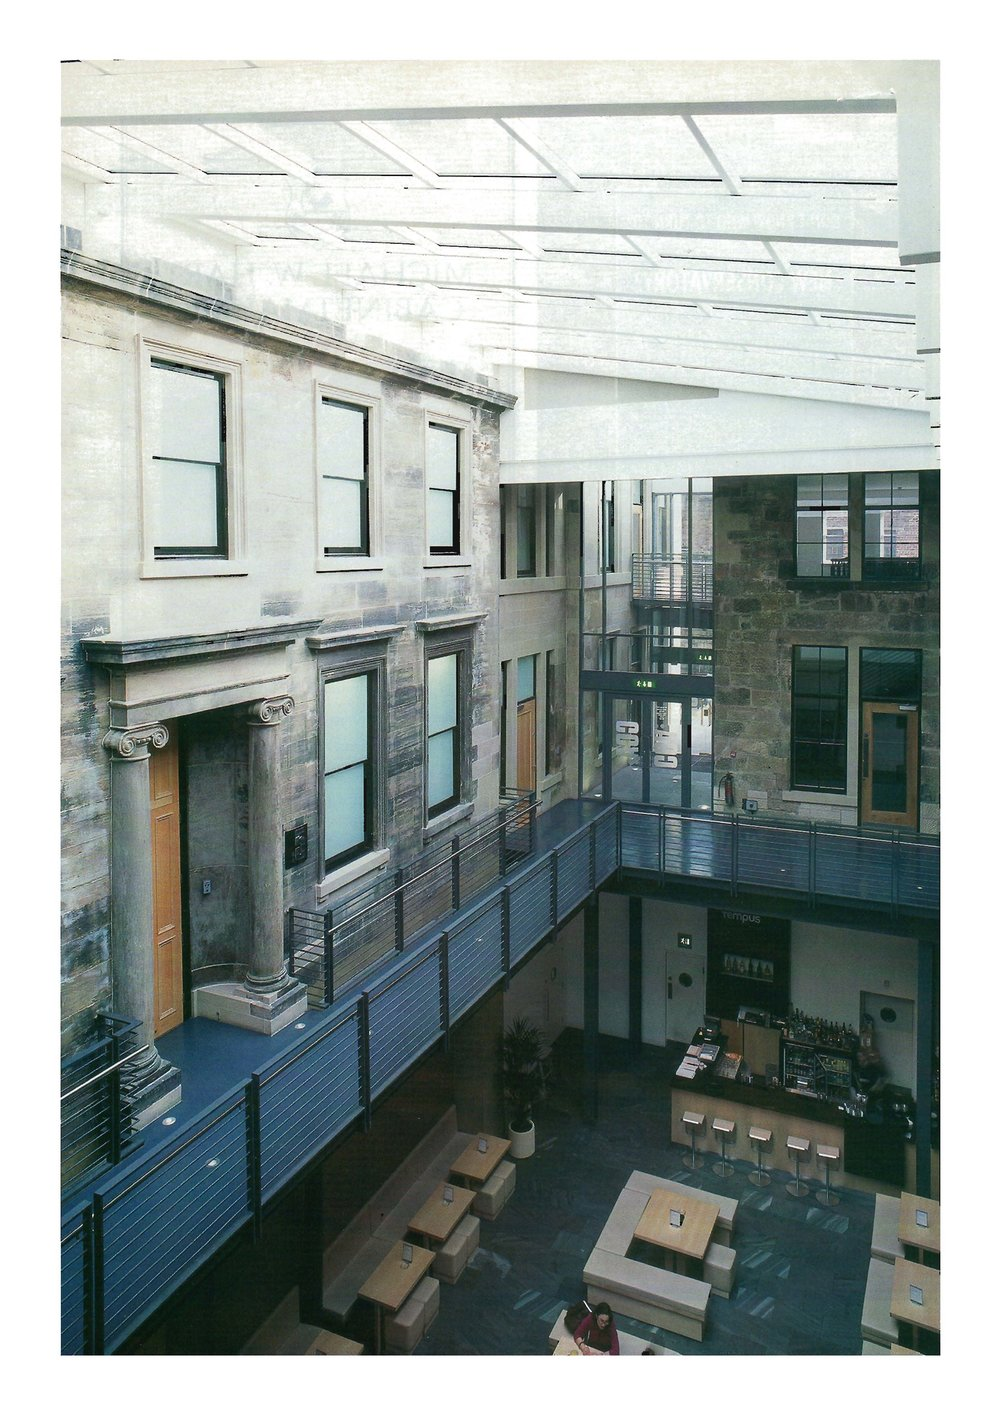 Intoxicating happenings: The Glasgow Centre for Contemporary Arts